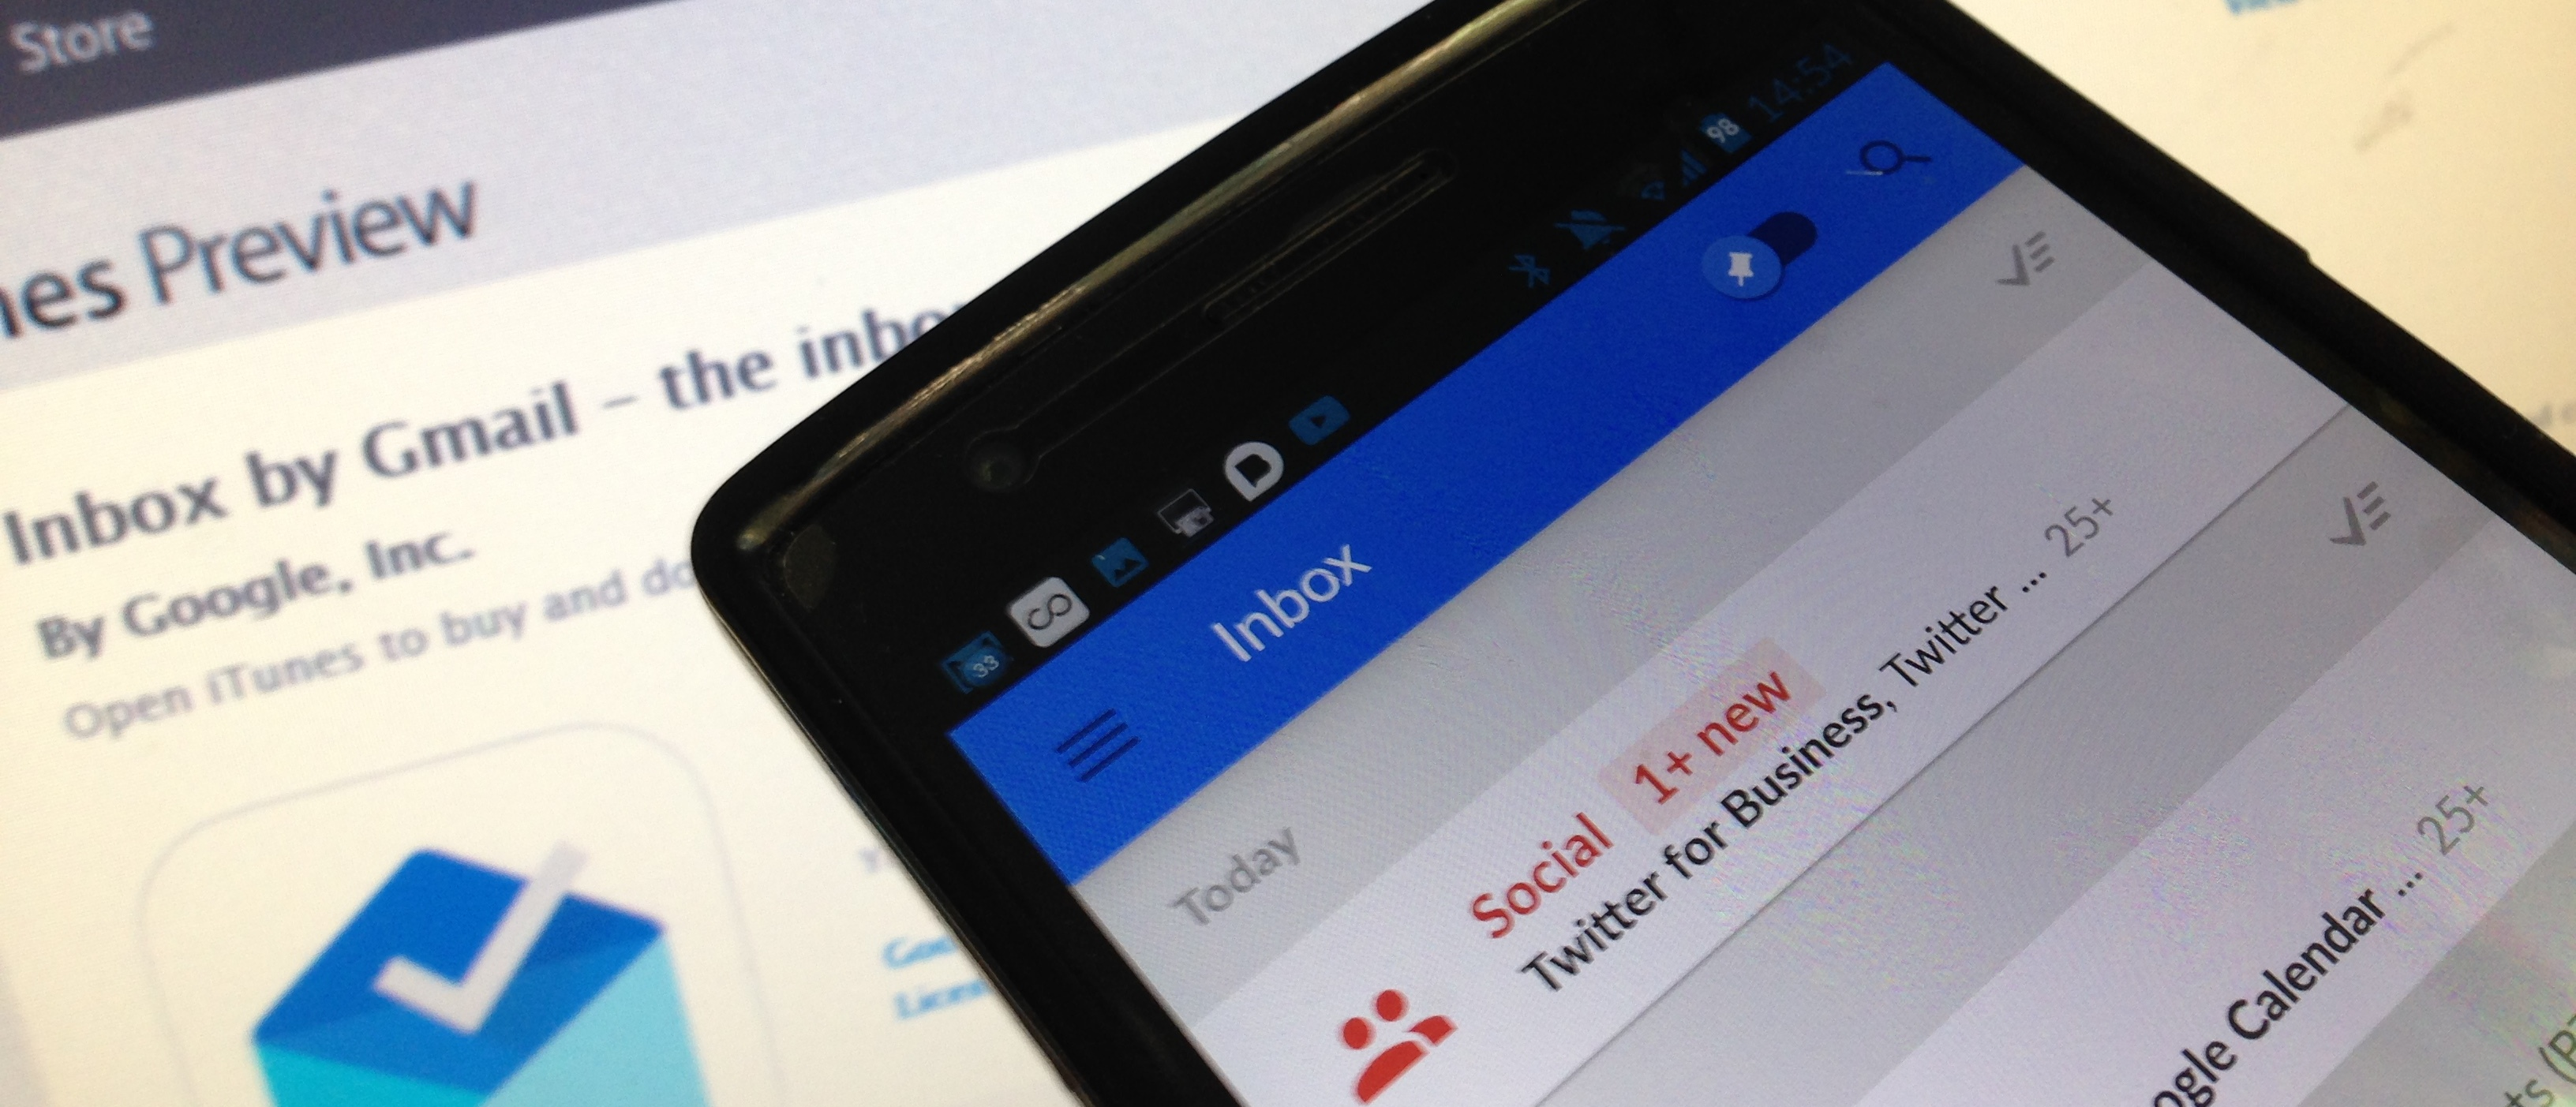 How to Access 'Inbox by Gmail' Without an Invite